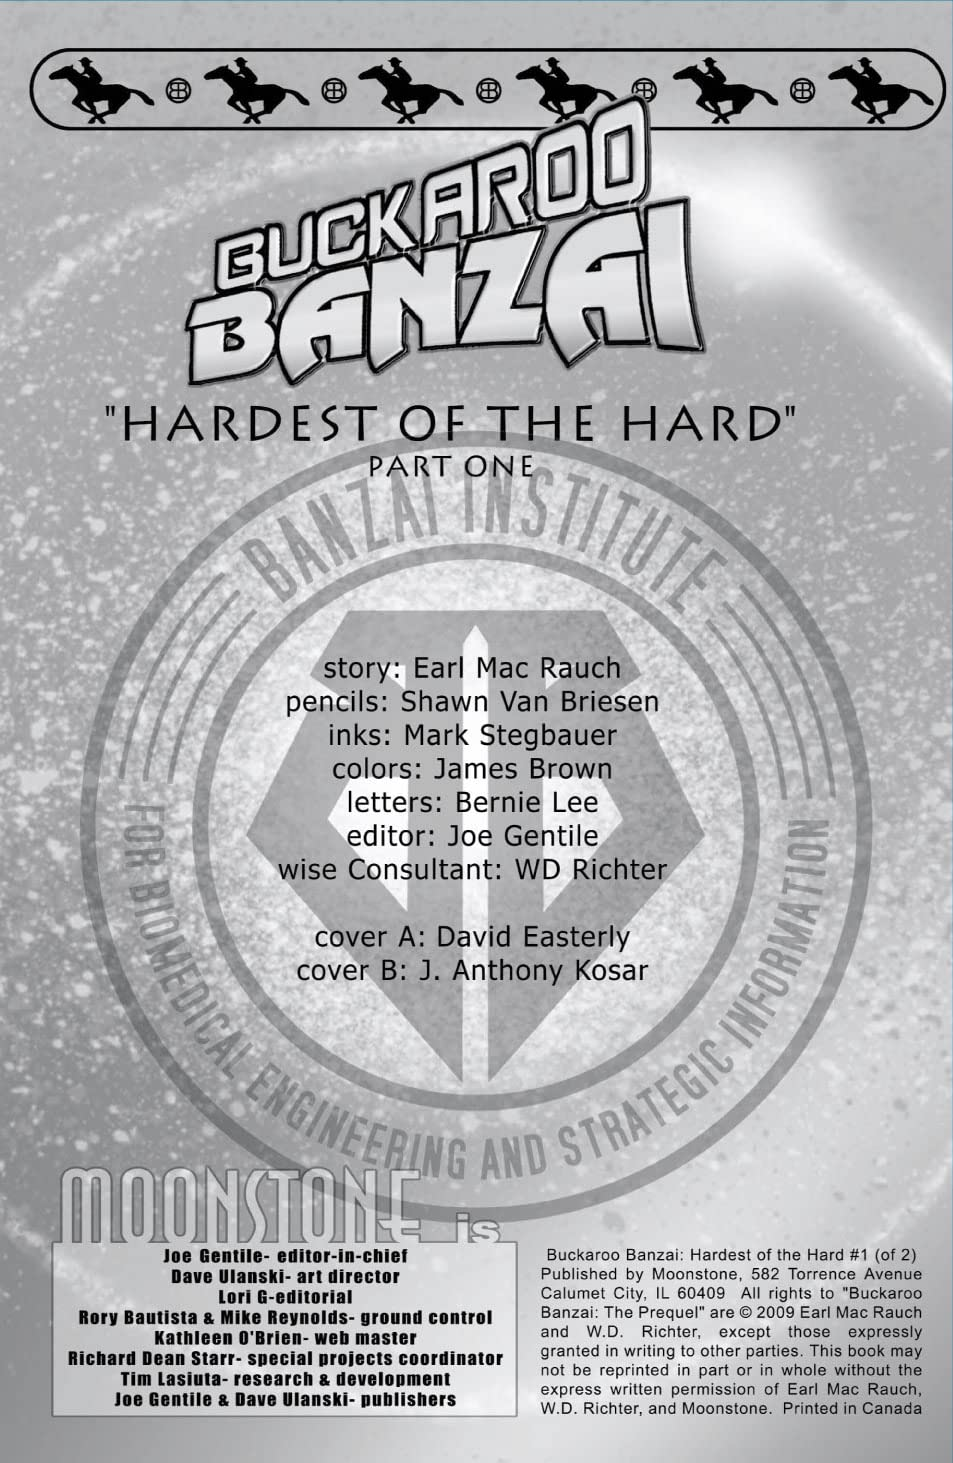 Buckaroo Banzai: Hardest of the Hard #1 (of 2)